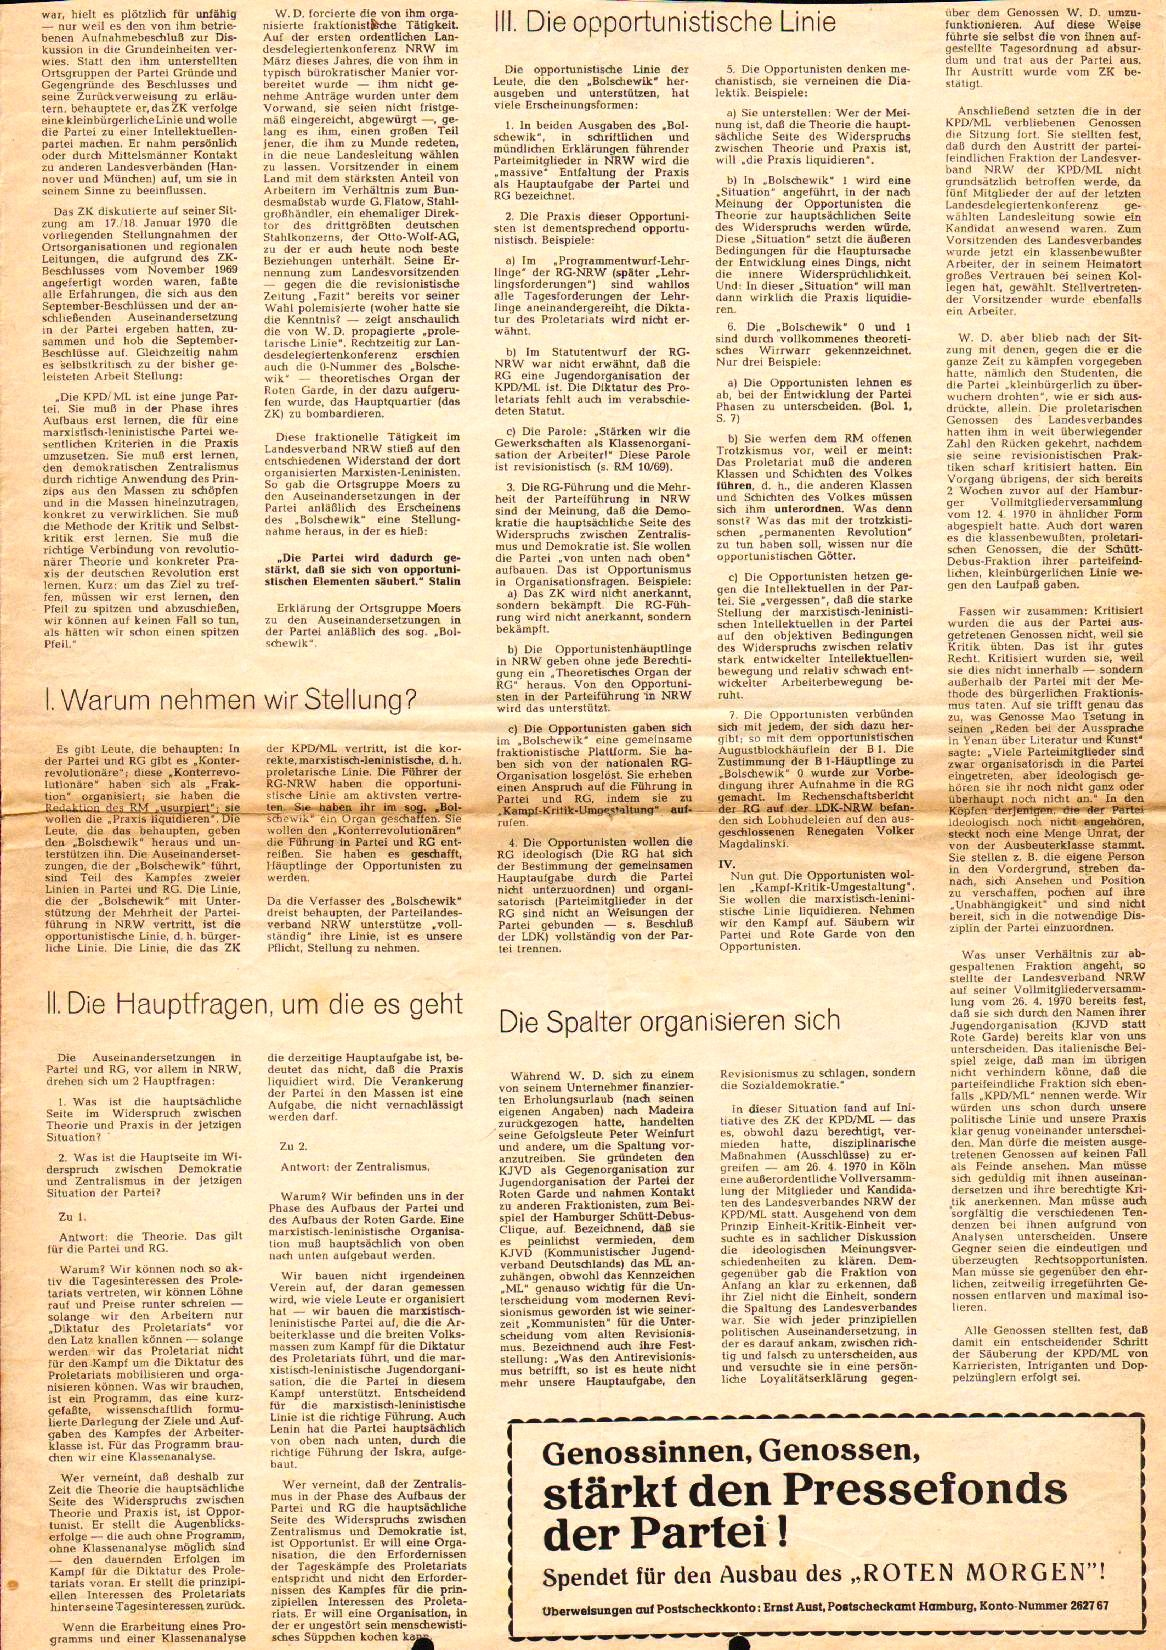 Roter Morgen, 4. Jg., August 1970, Nr. 7, Seite 3